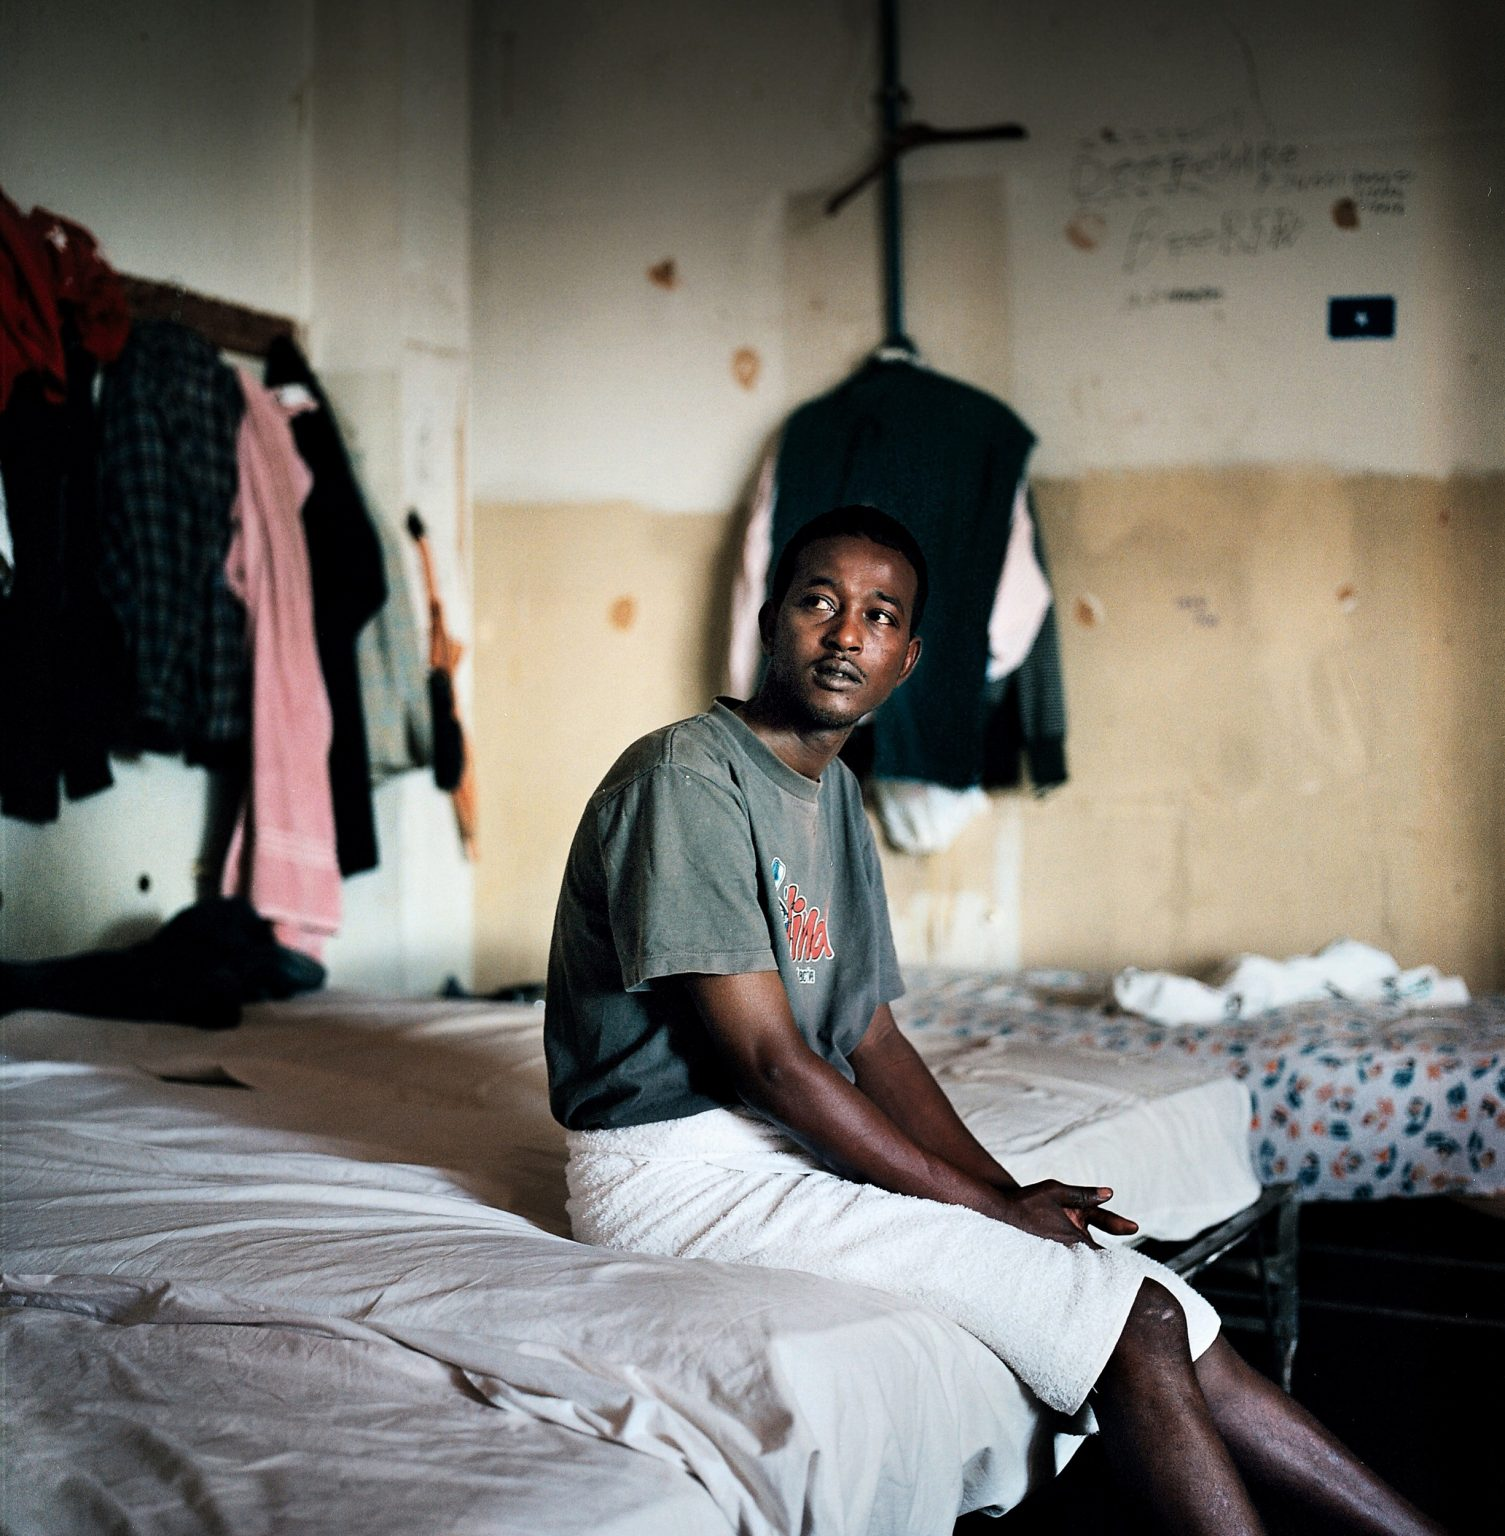 A refugee from Somalia is seen sitting on his bed in a former pediatric hospital located few miles away from the historical centre of the city. The former hospital fell into disuse years ago. It became a temporary shelter to a small community of refugees from Somalia waiting for their political status to be recognized by the Italian authorities.